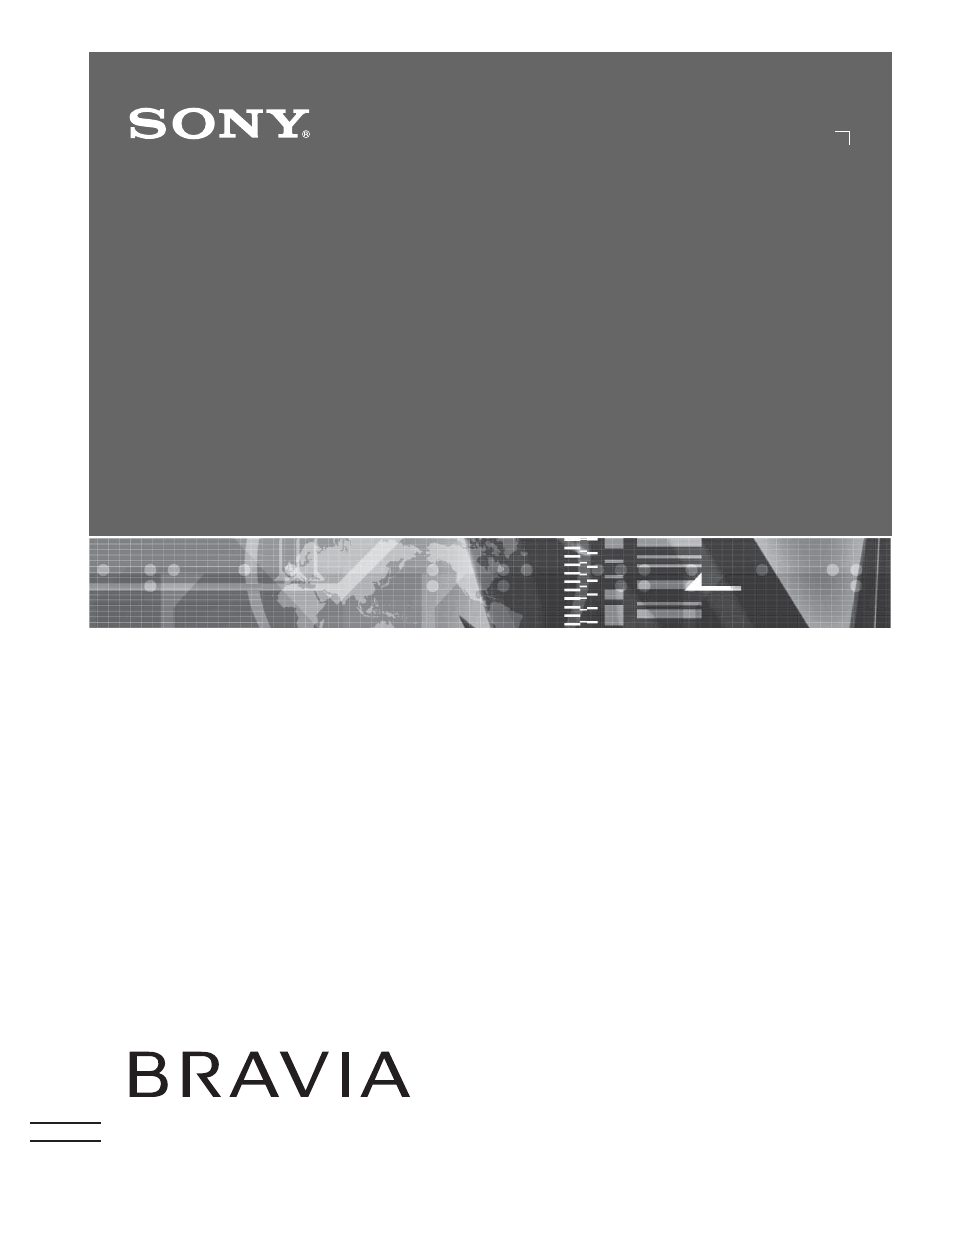 I manual For sony bravia Tv